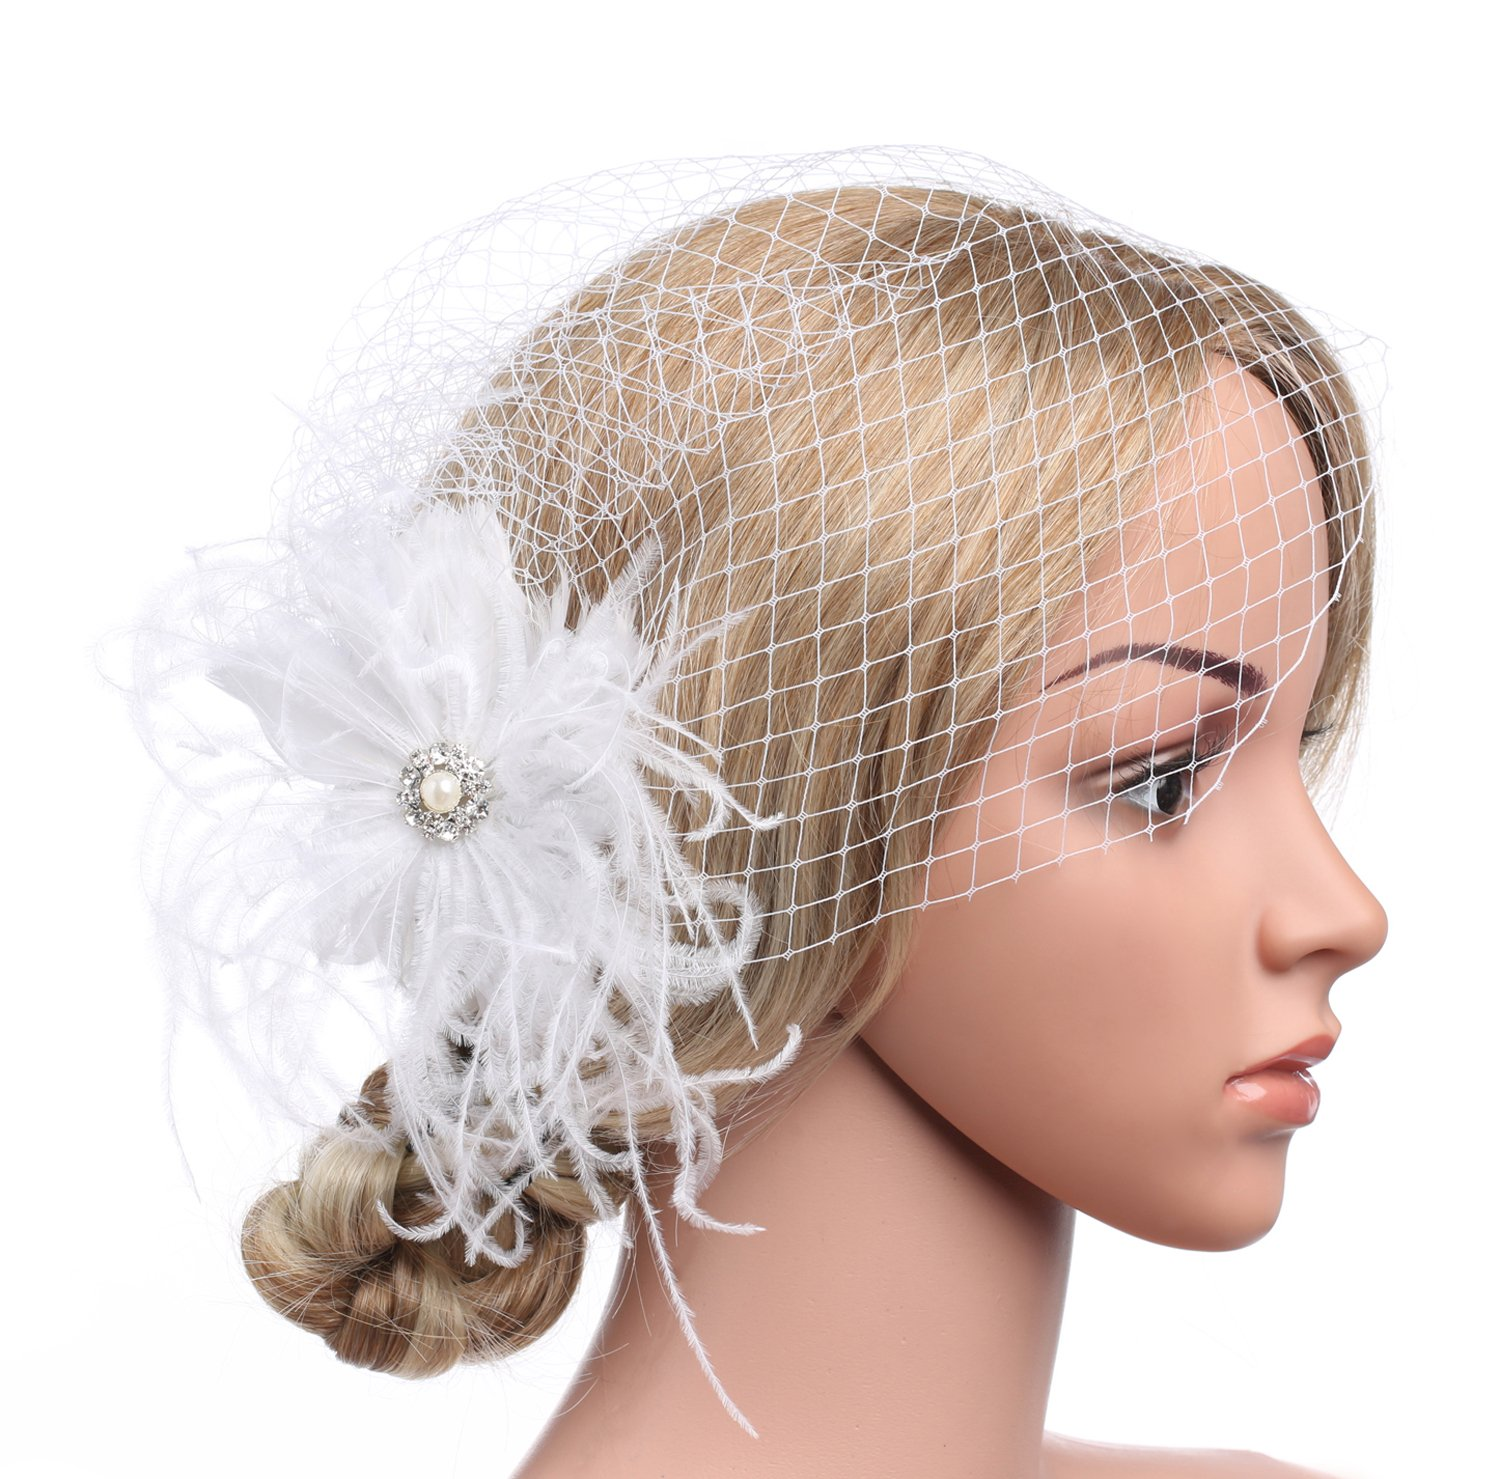 BABEYOND Bridal Wedding Fascinator Mesh Feather Fascinator Hair Clip Hair Fascinator Veil Crystal Wedding Veil (White)